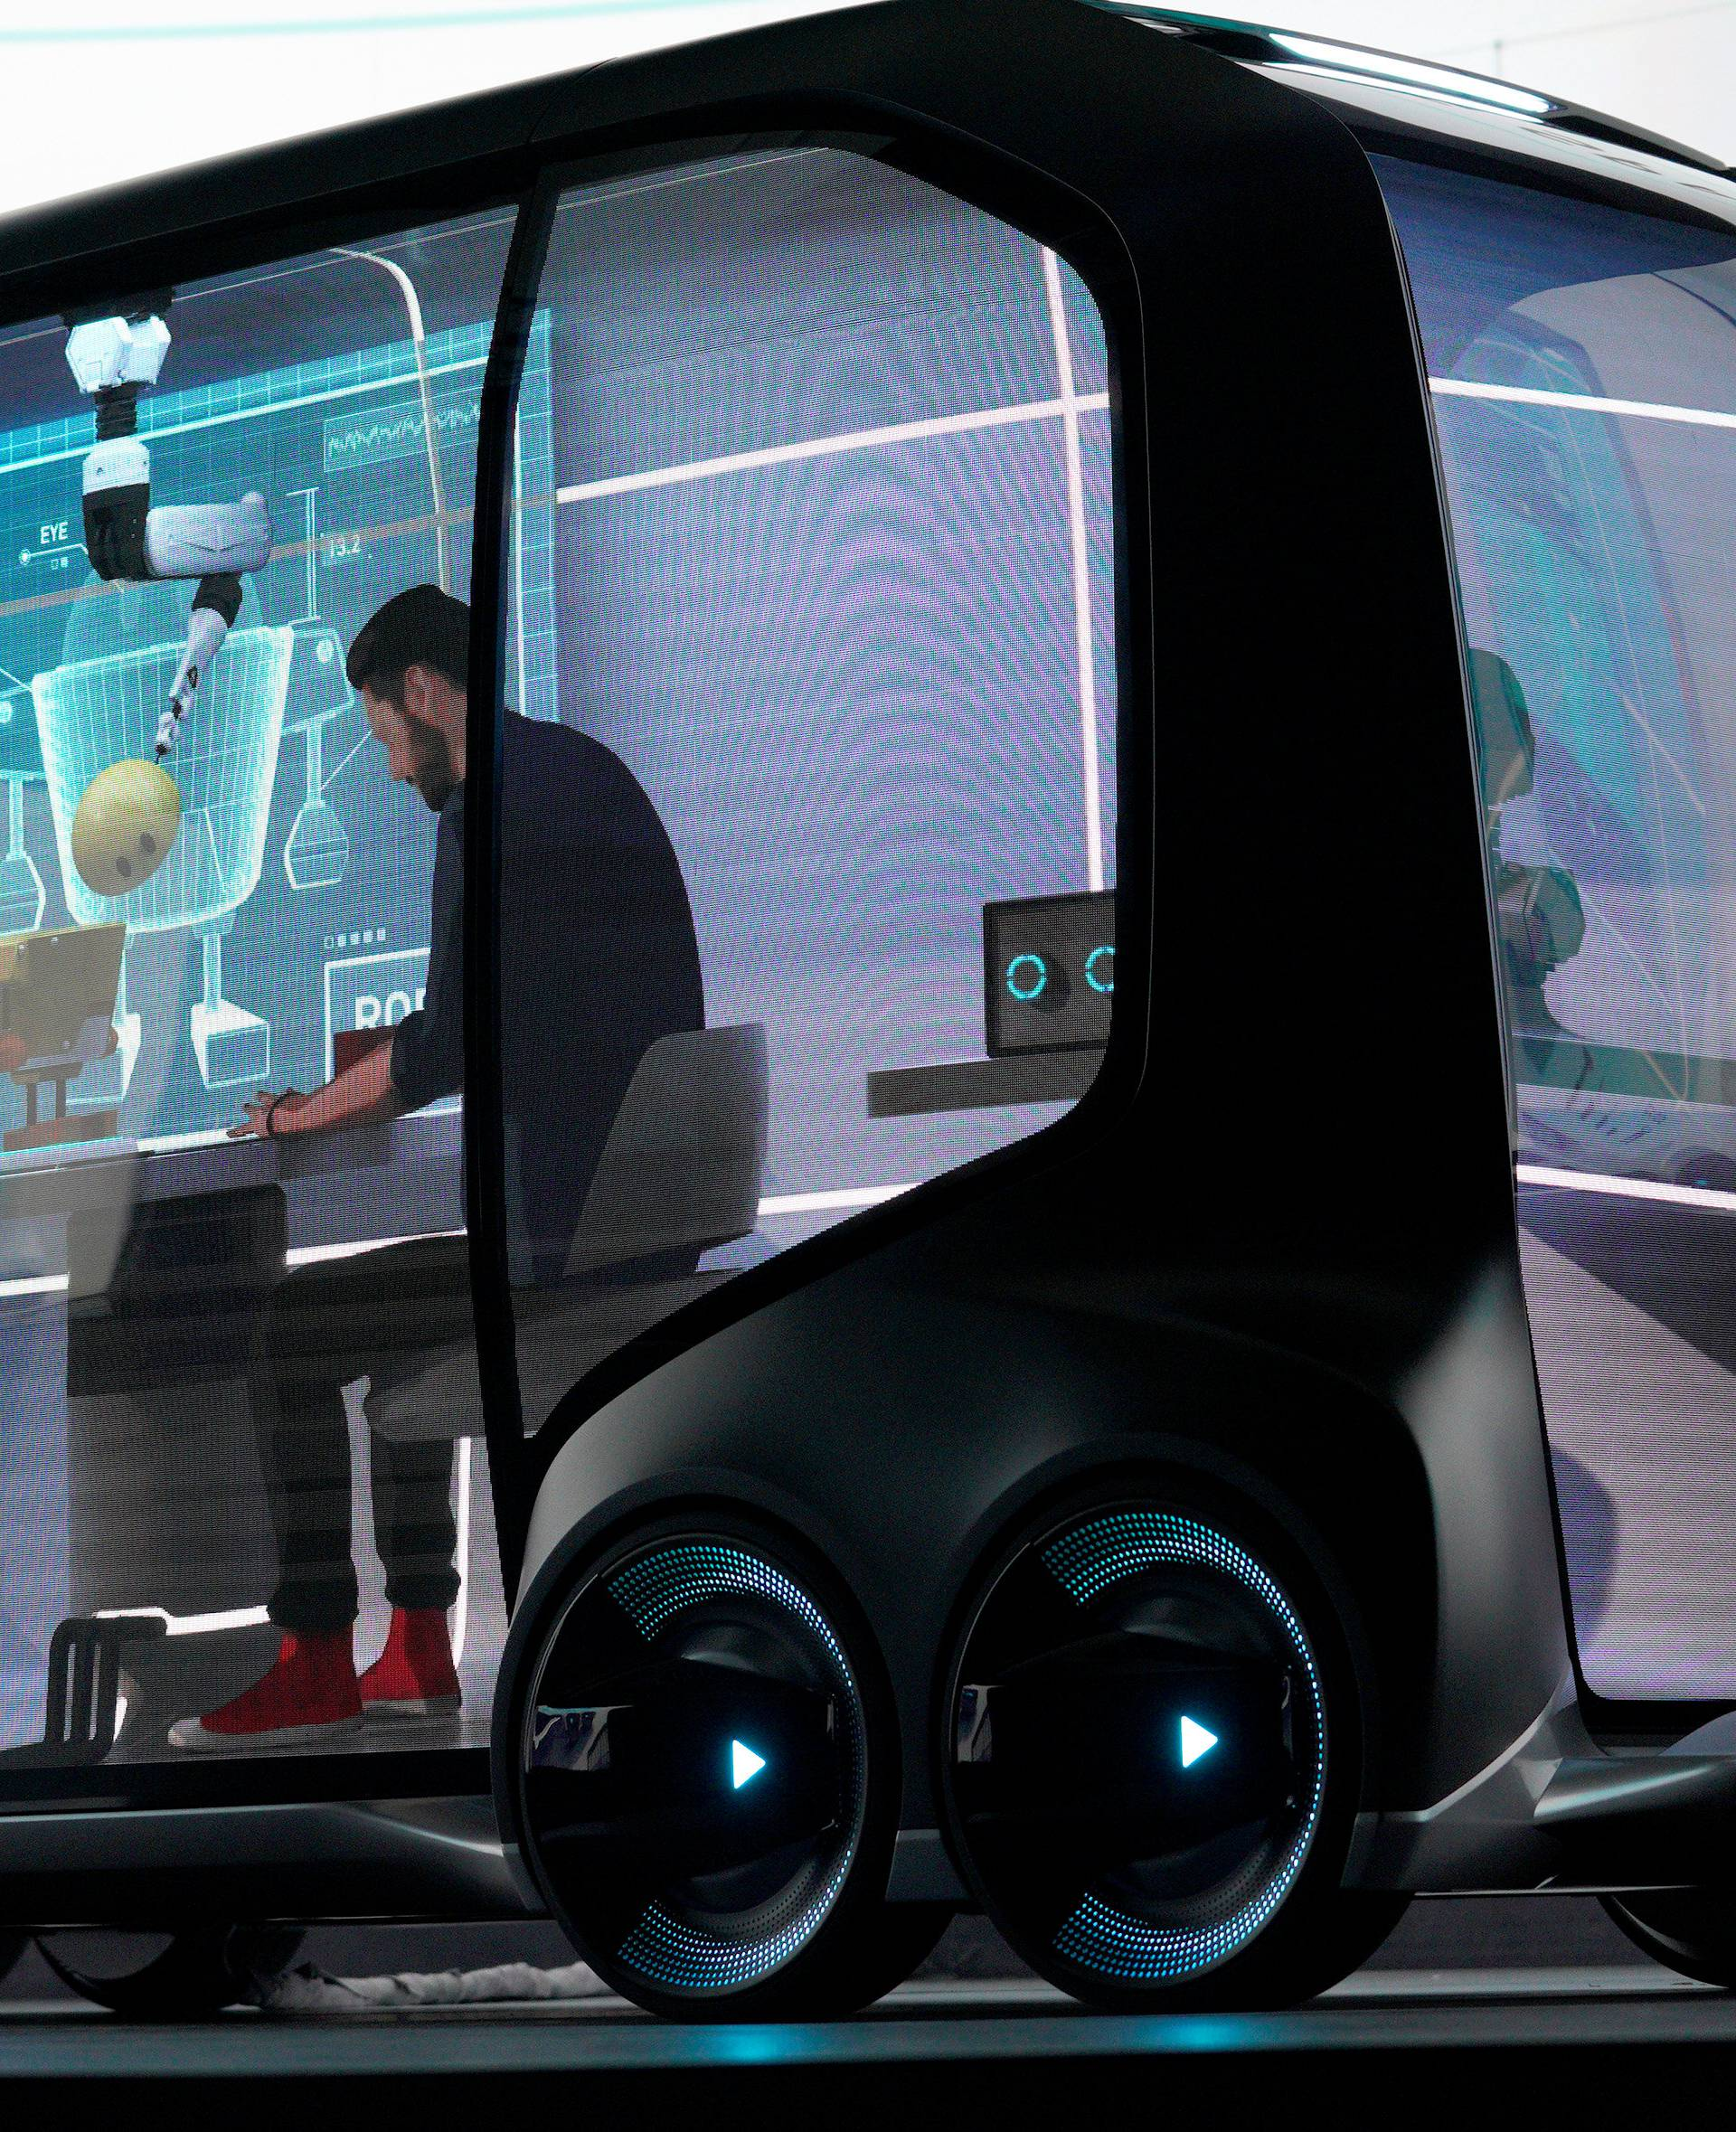 """Toyota Motor Corporation, displays the """"e-Pallete"""", a new fully self-driving electric concept vehicle designed to be used for ride hailing, parcel delivery services and other uses at CES in Las Vegas"""